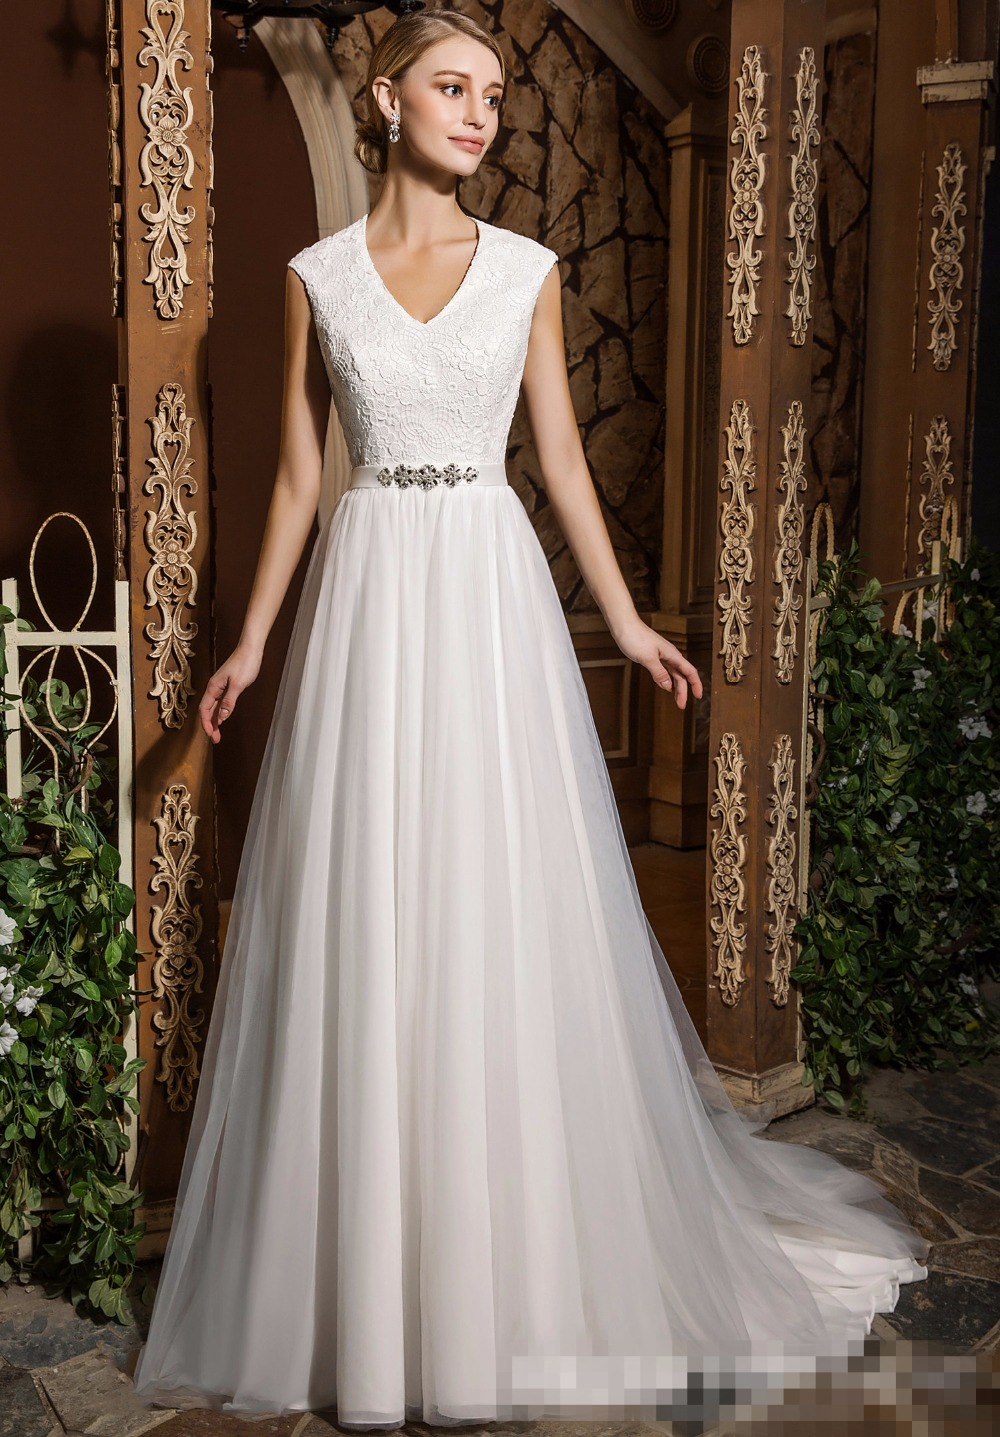 2019 Informal Modest Wedding Dresses Short Sleeves V Neck Lace Tulle Reception Bridal Gowns Outdoor Country Western Wedding Gown